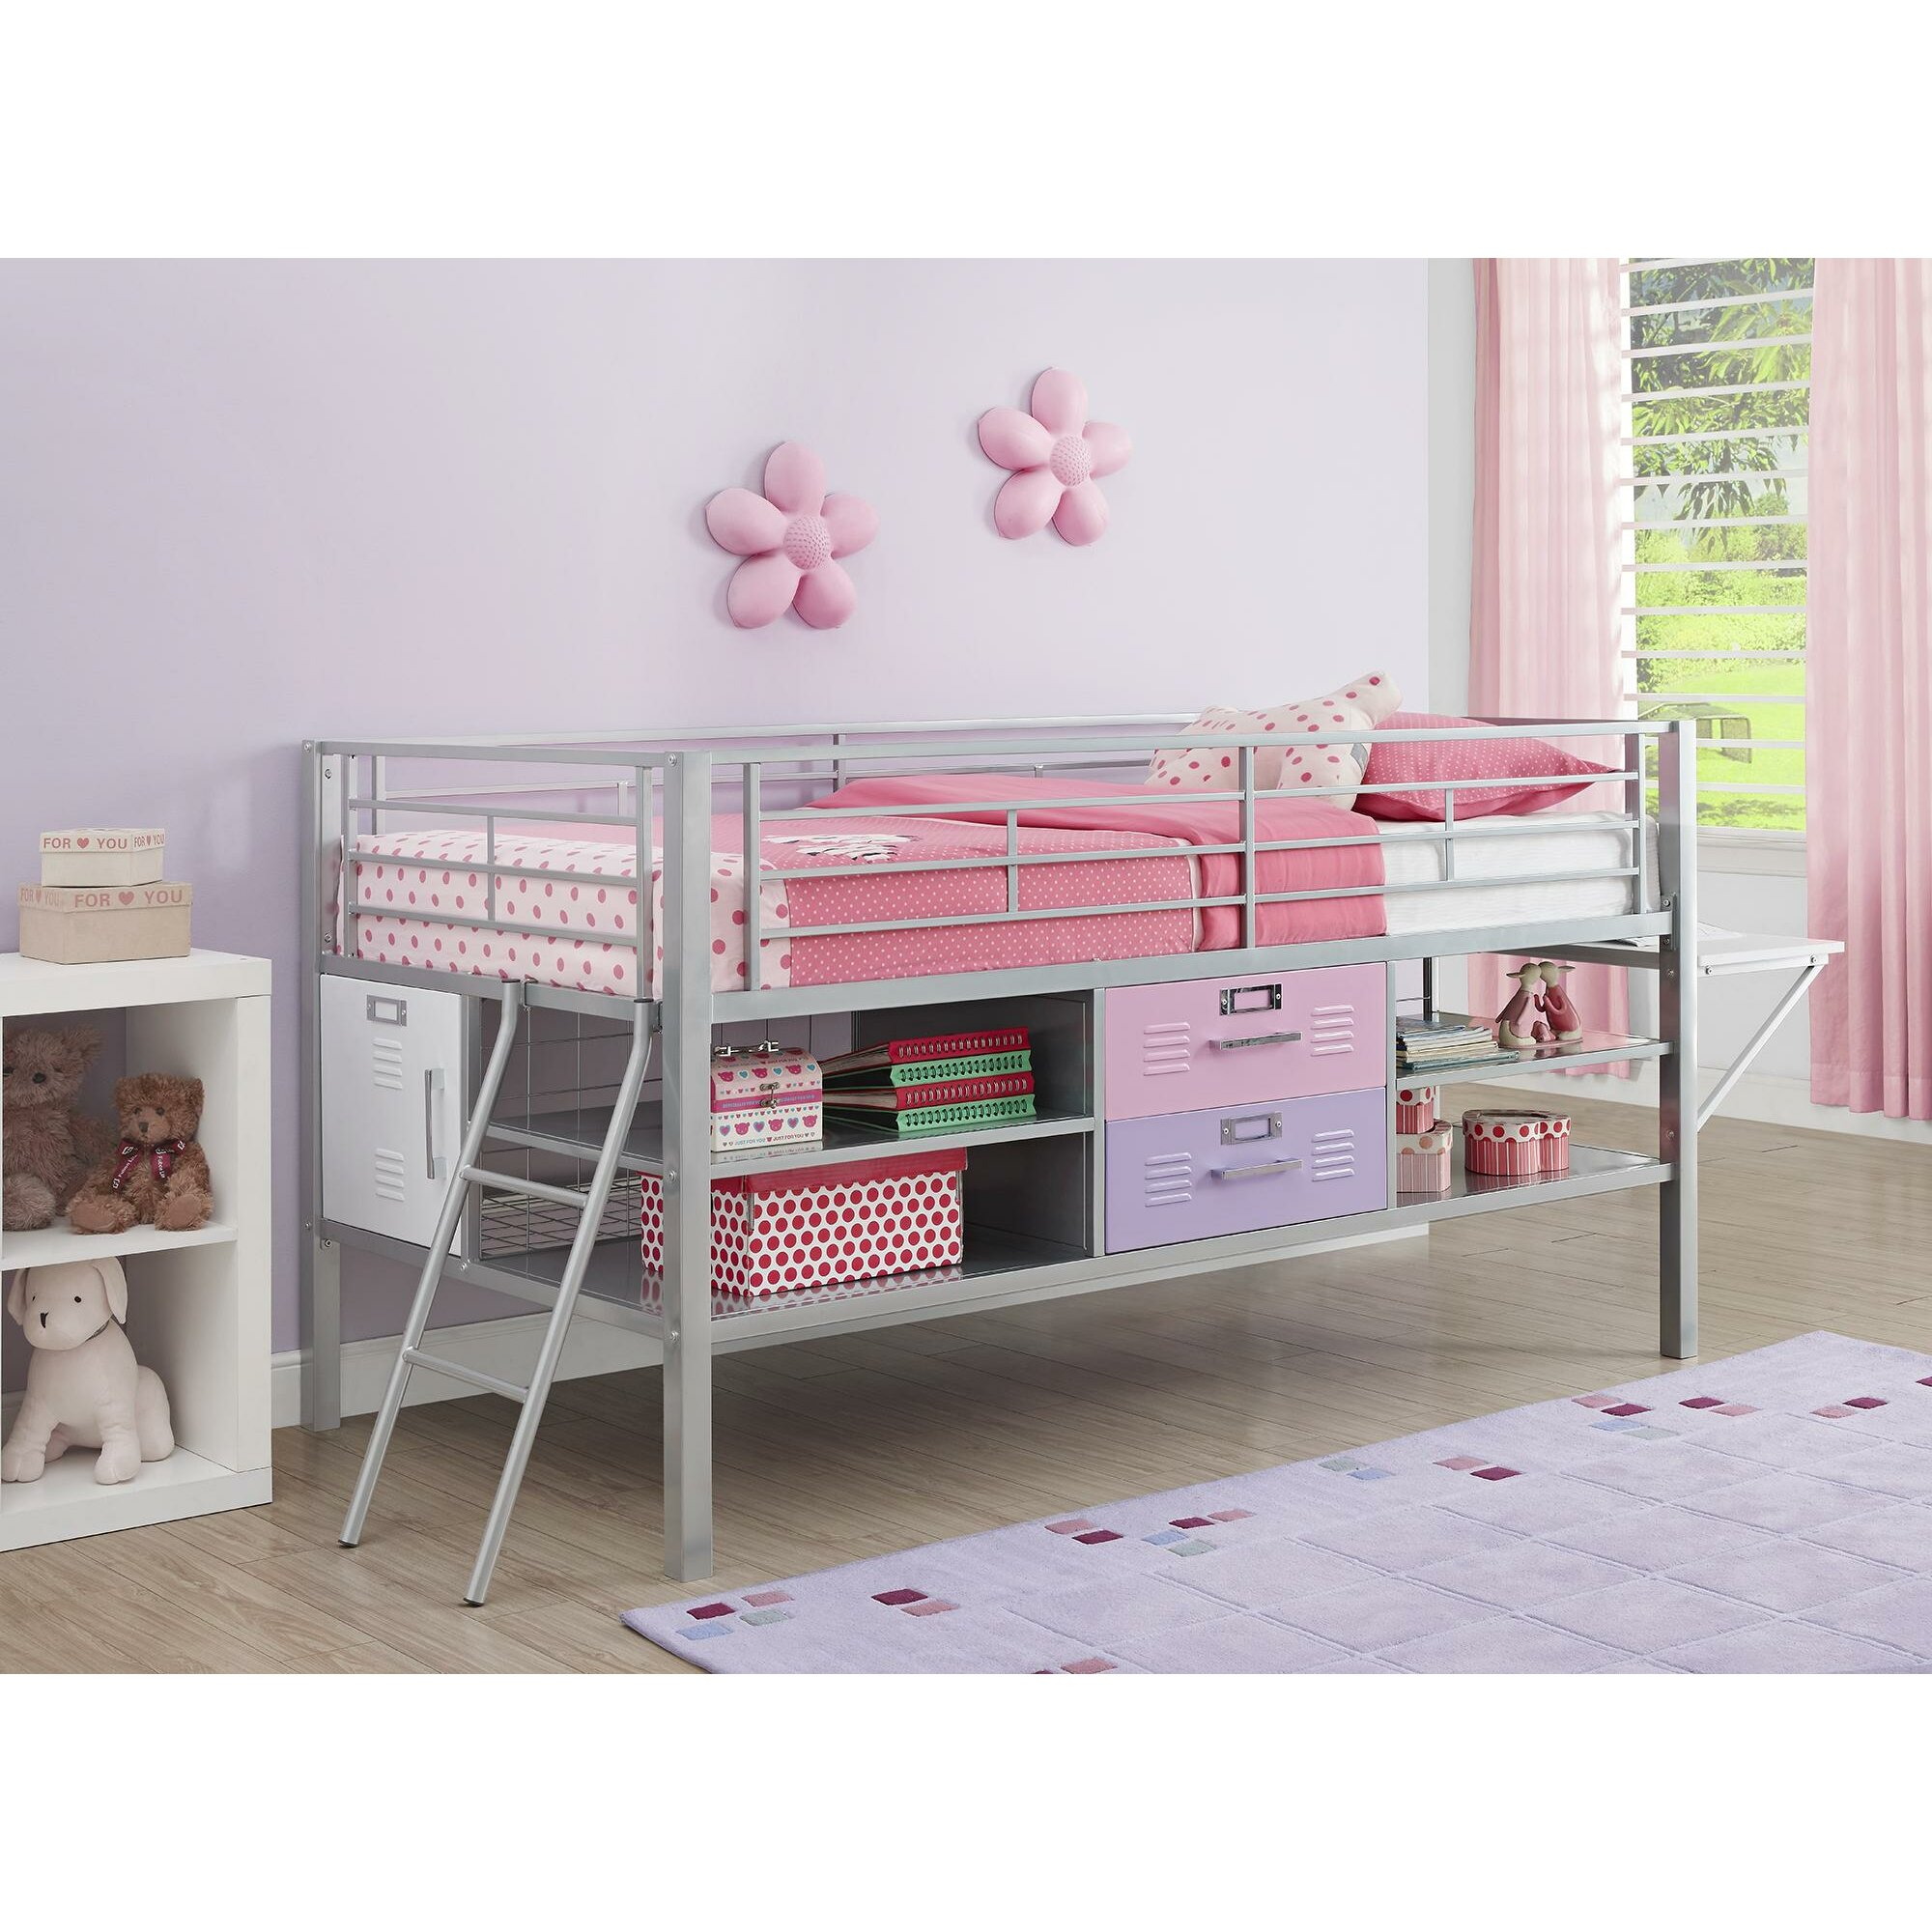 Dhp Junior Twin Loft Bed With Storage Reviews Wayfair